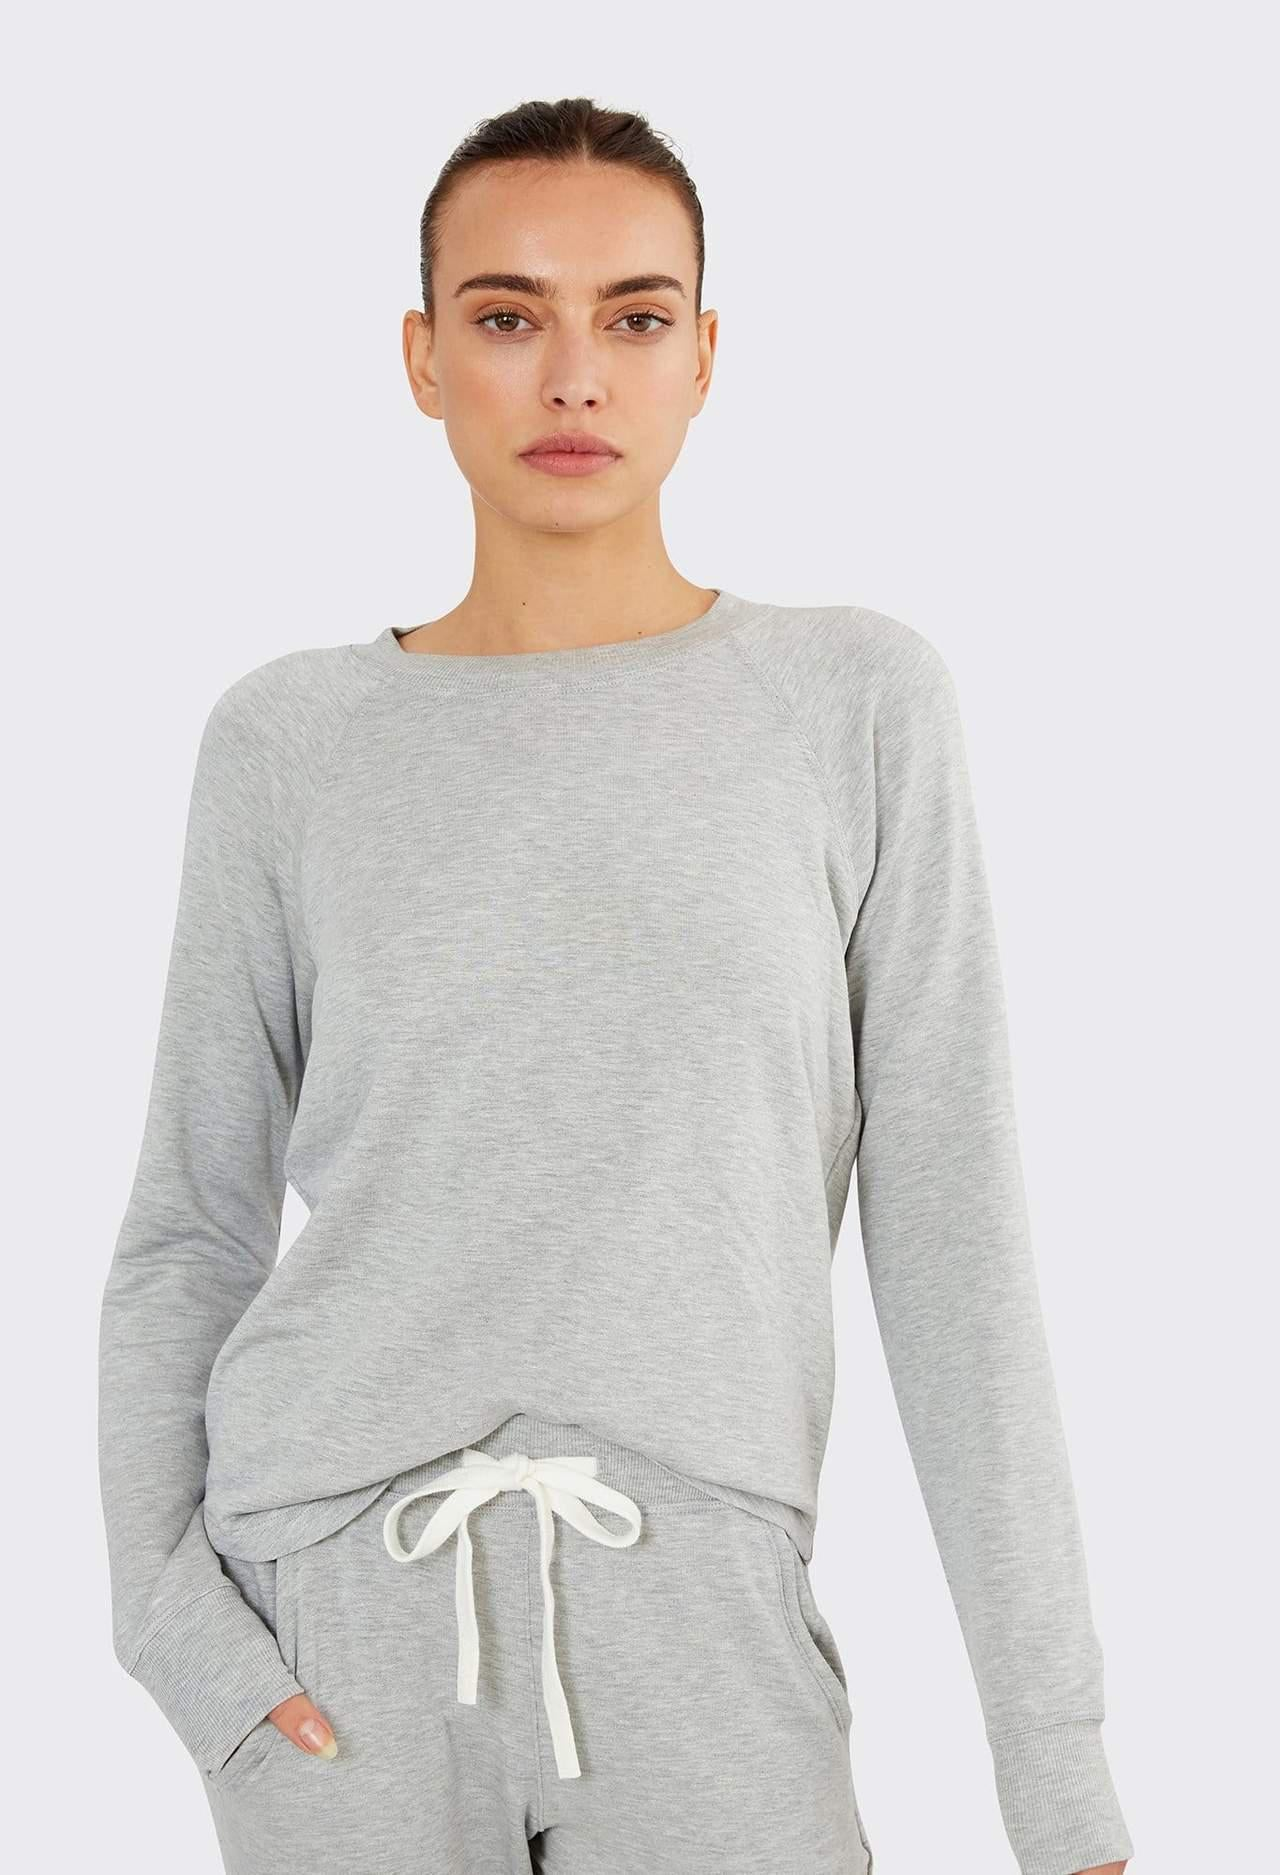 Splits 59 Warm Up Fleece Sweatshirt - Heather Grey